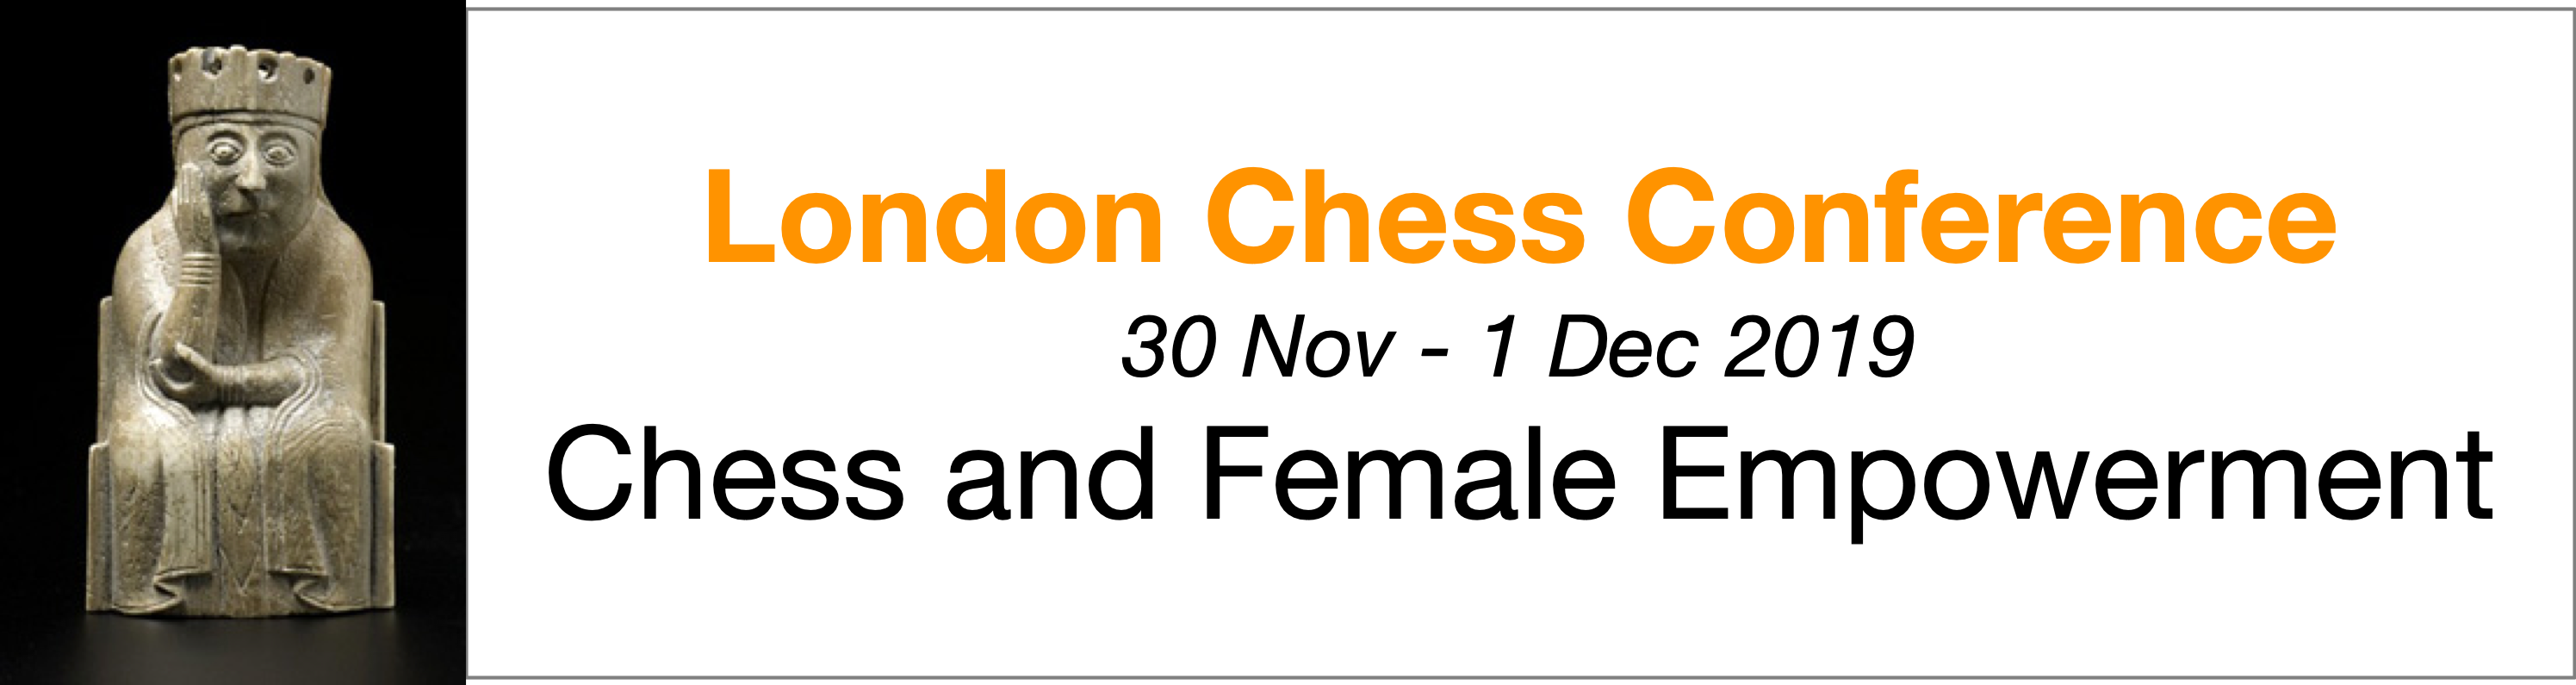 London Chess Conference @ Irish Cultural Centre, Hammersmith